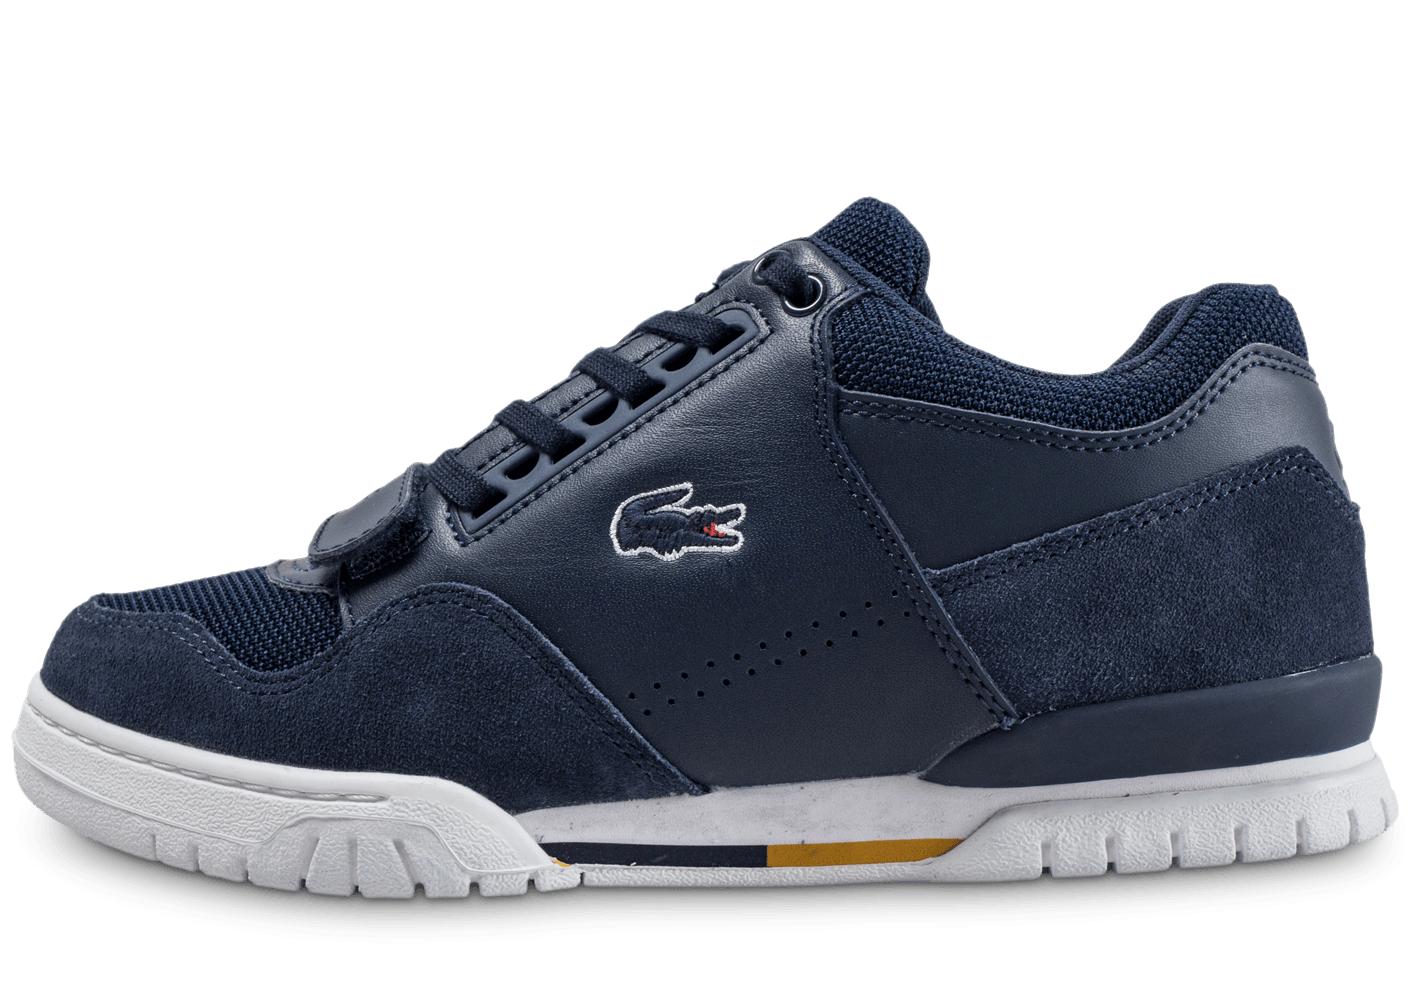 Chaussures Lacoste bleues homme IddmYR